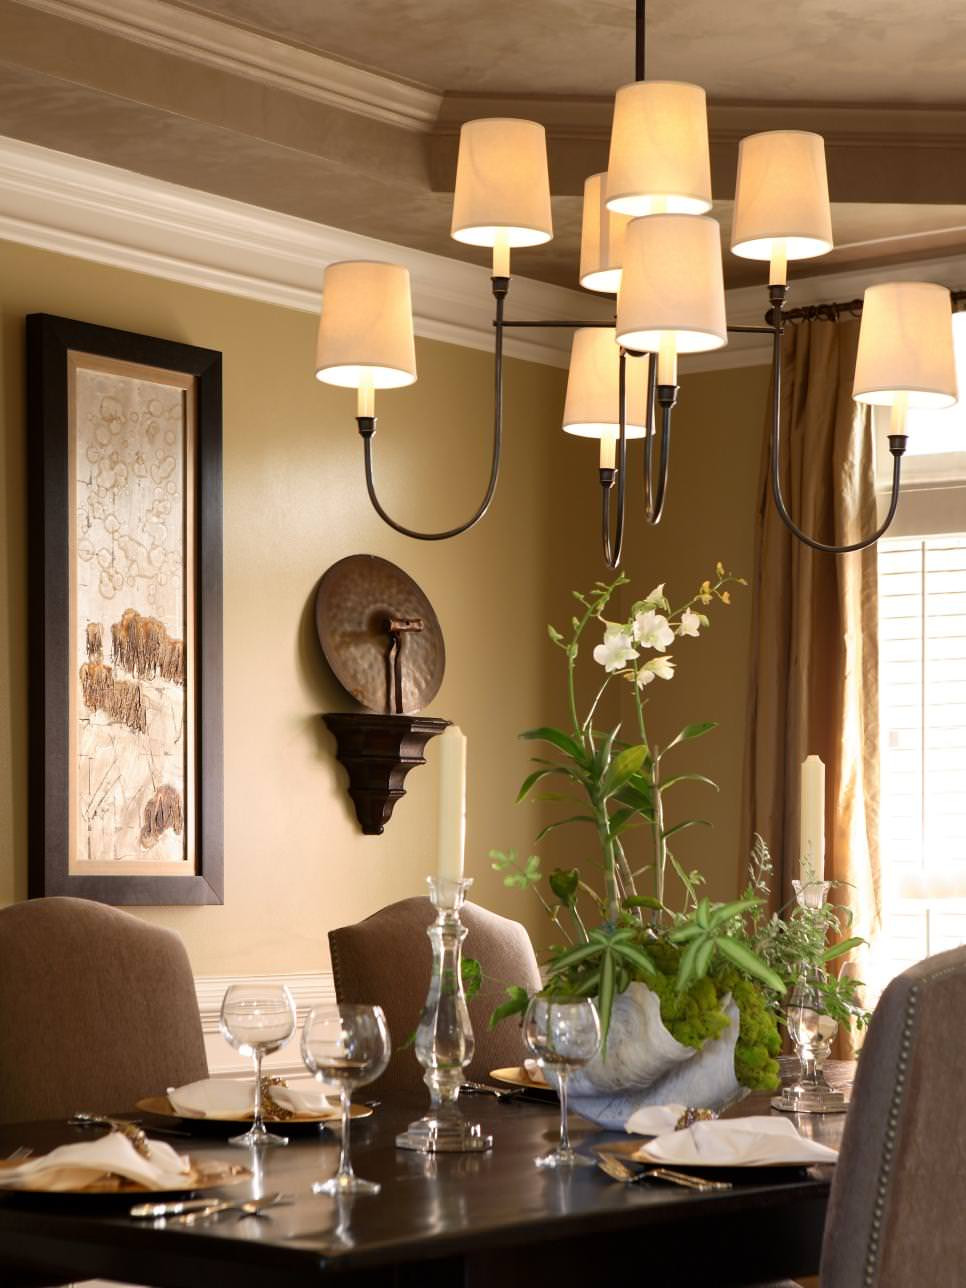 Best ideas about Dining Room Chandelier . Save or Pin 23 Dining Room Chandelier Designs Decorating Ideas Now.